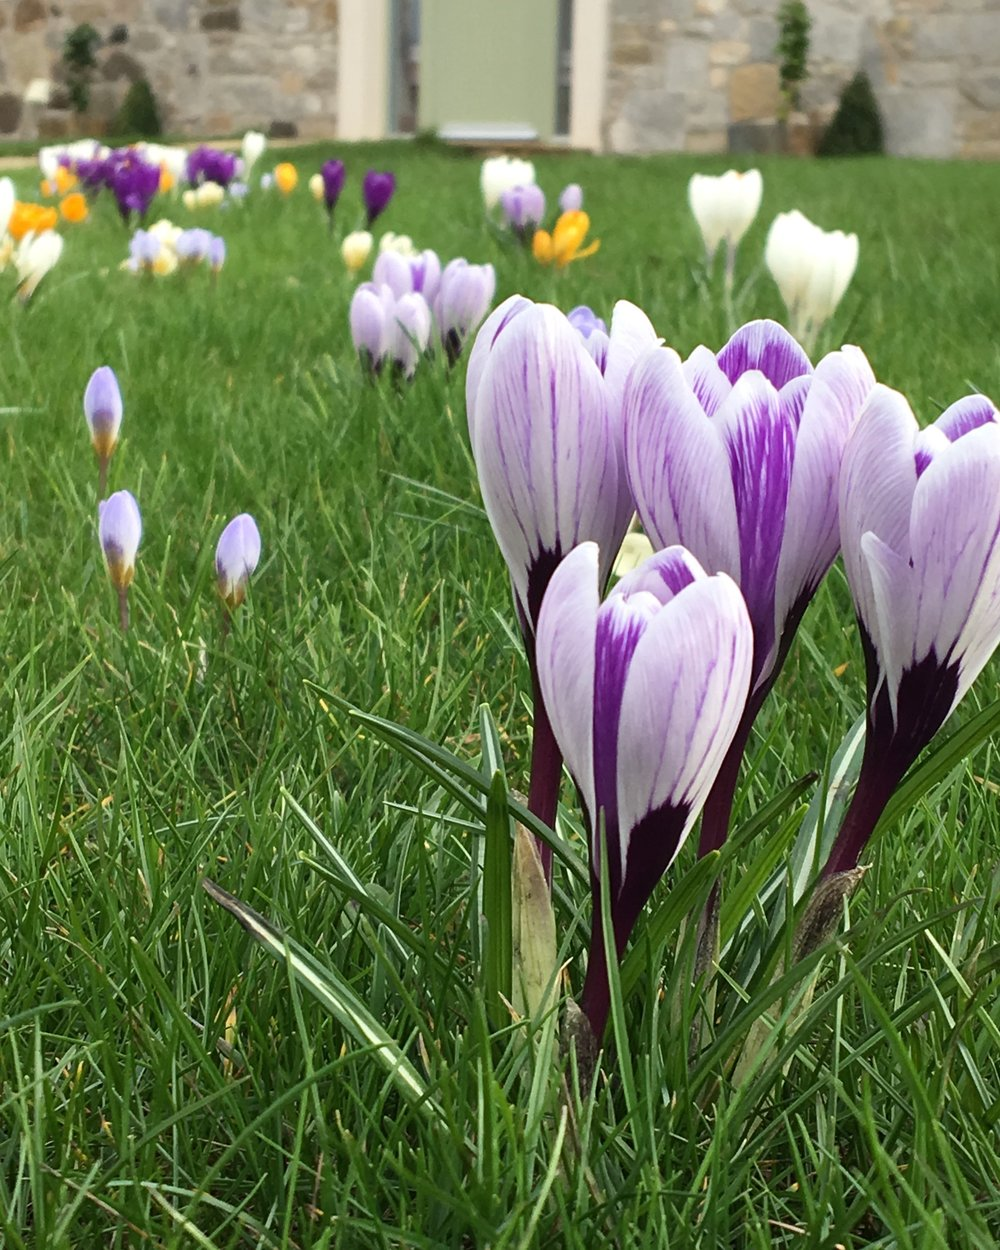 Crocuses opening up to the early March sunshine.